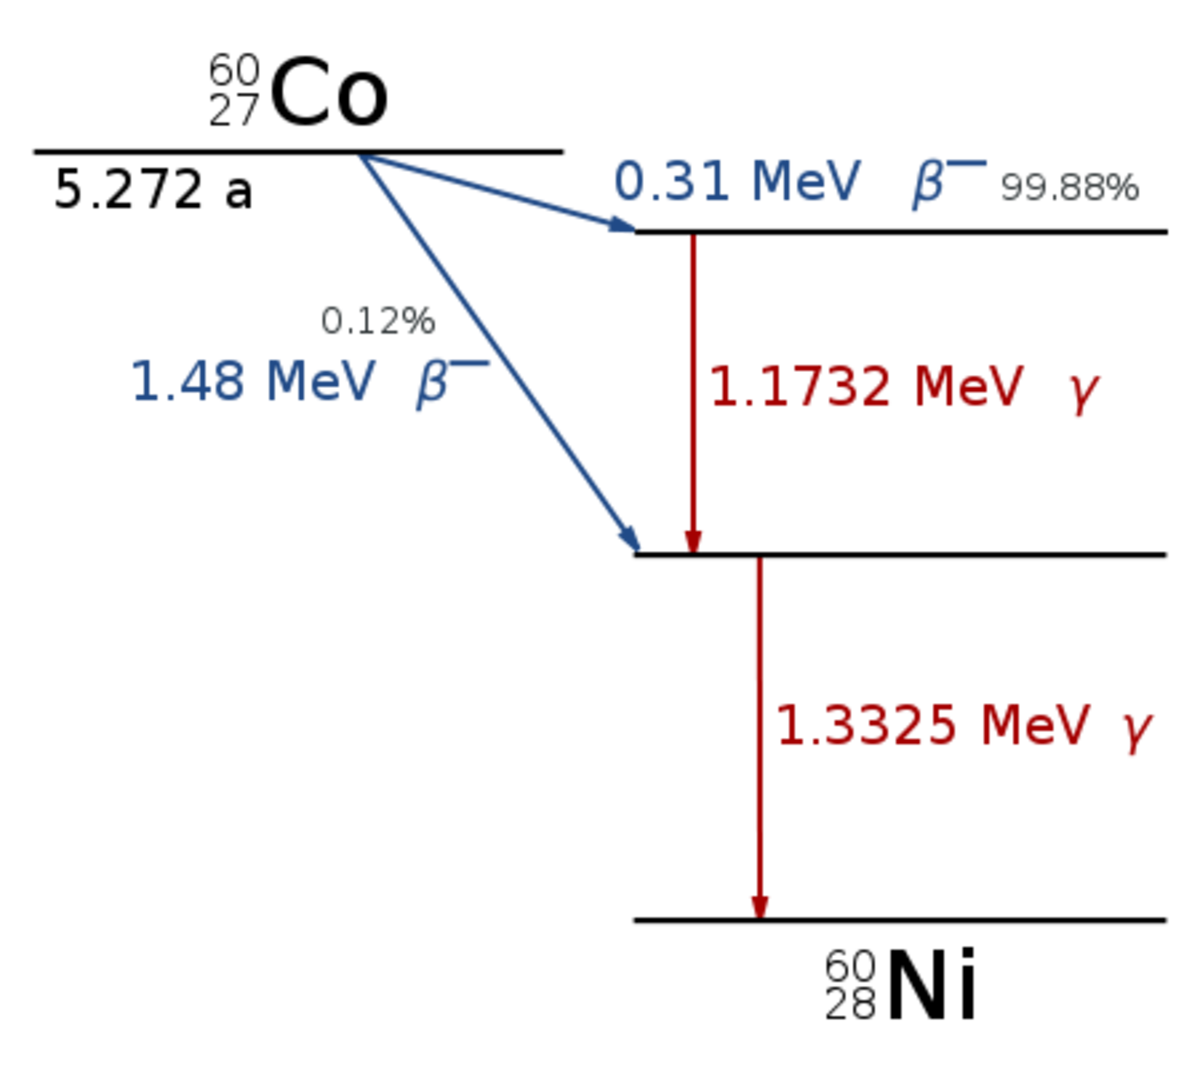 The decay scheme for cobalt-60. The cobalt decays through beta decay followed by gamma ray emission to reach the stable state of nickel-60. Other elements have much more complex decay chains.